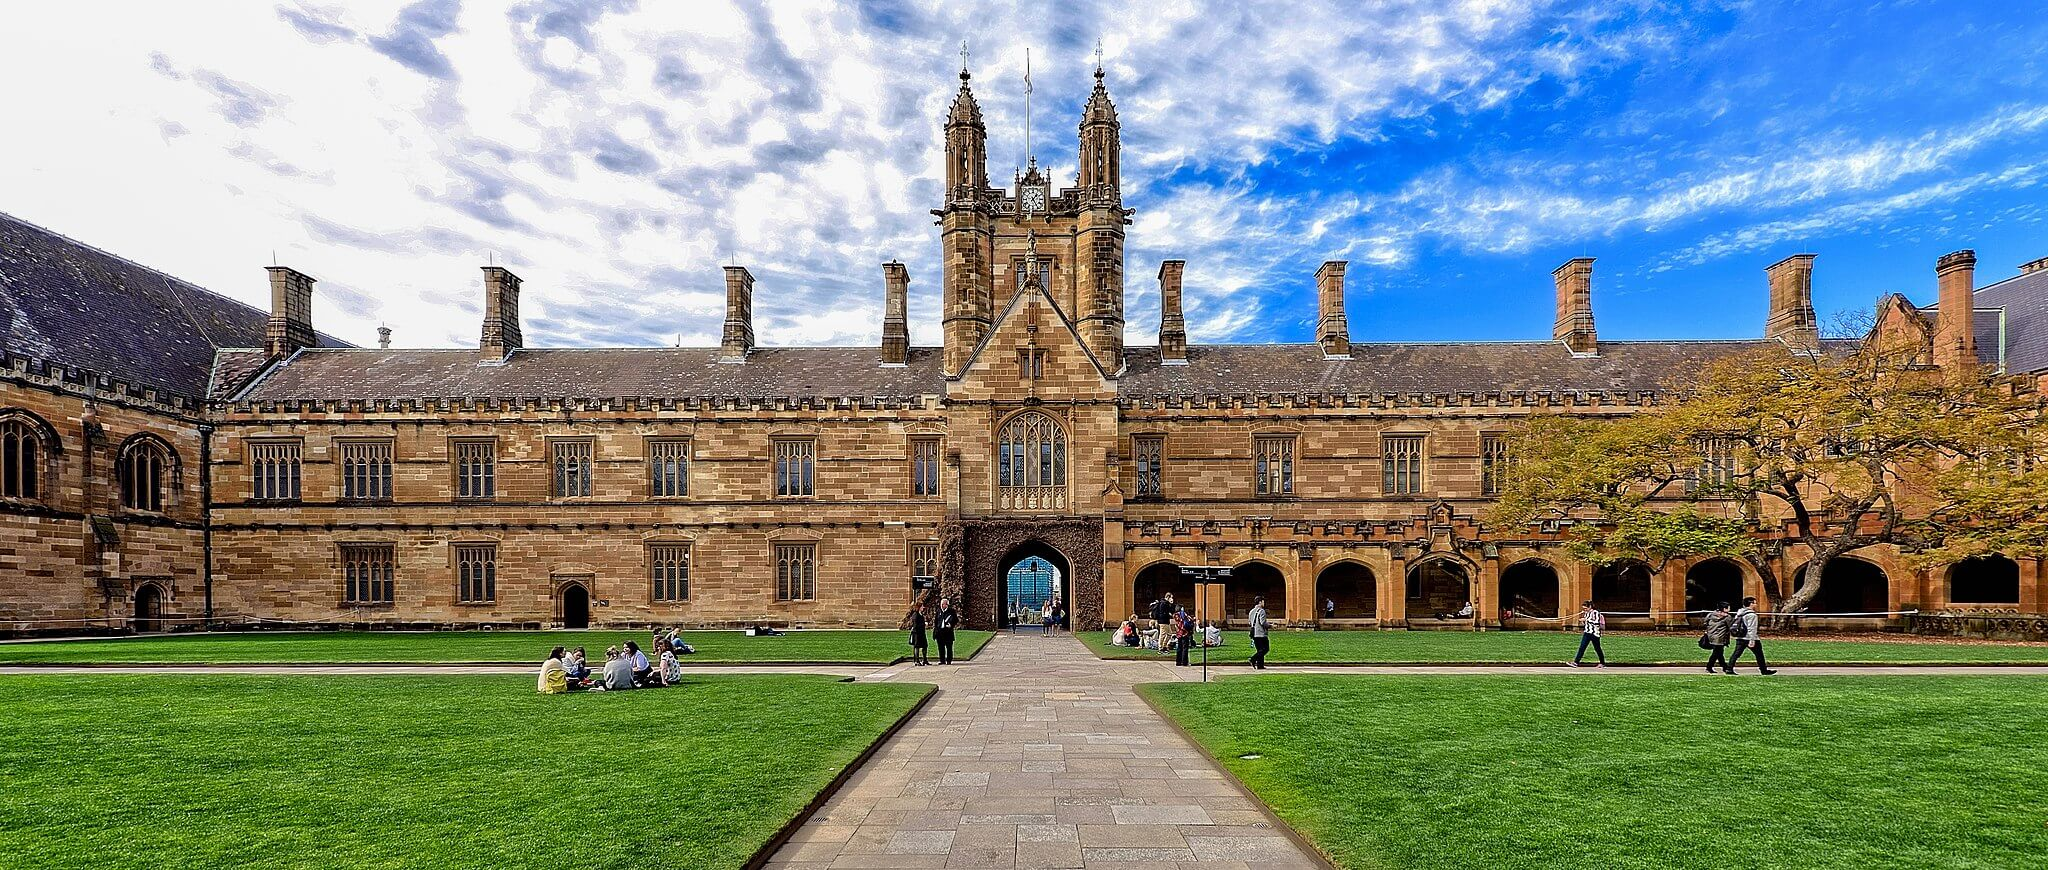 How to apply for free student accommodation if you're stranded in Australia